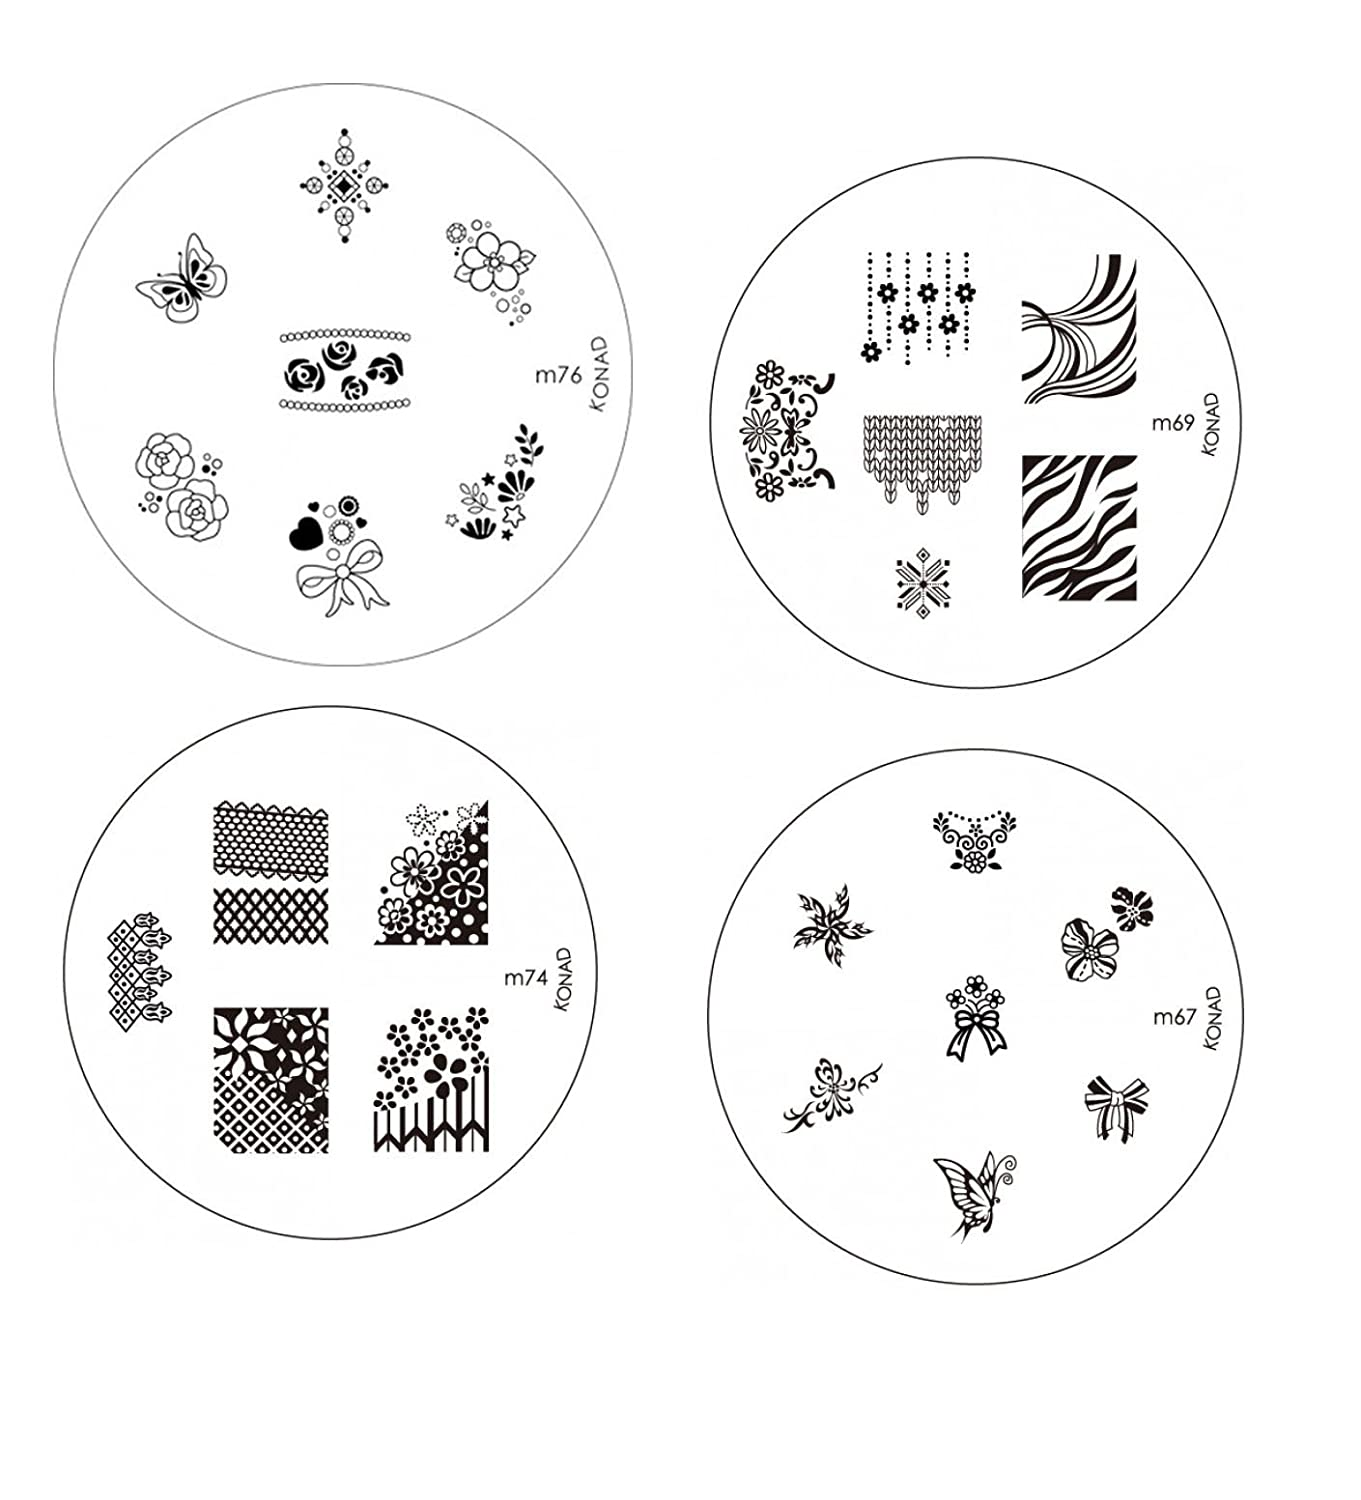 Amazon. Com: konad square stamping nail art image plate w/ double.